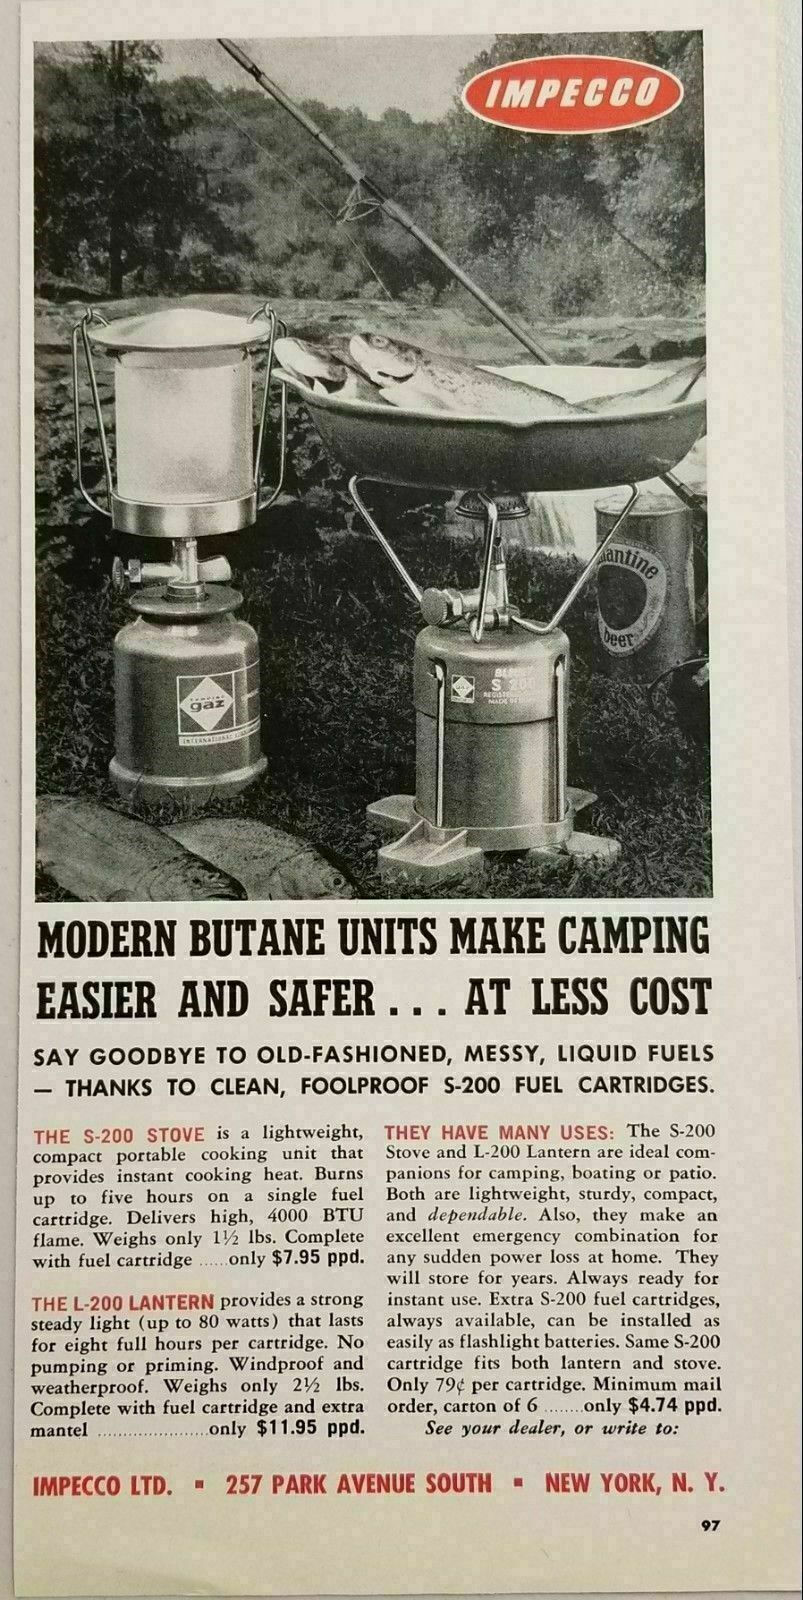 Primary image for 1964 Print Ad Impecco Butane S-200 Camping Stove & L-200 Lanterns New York,NY